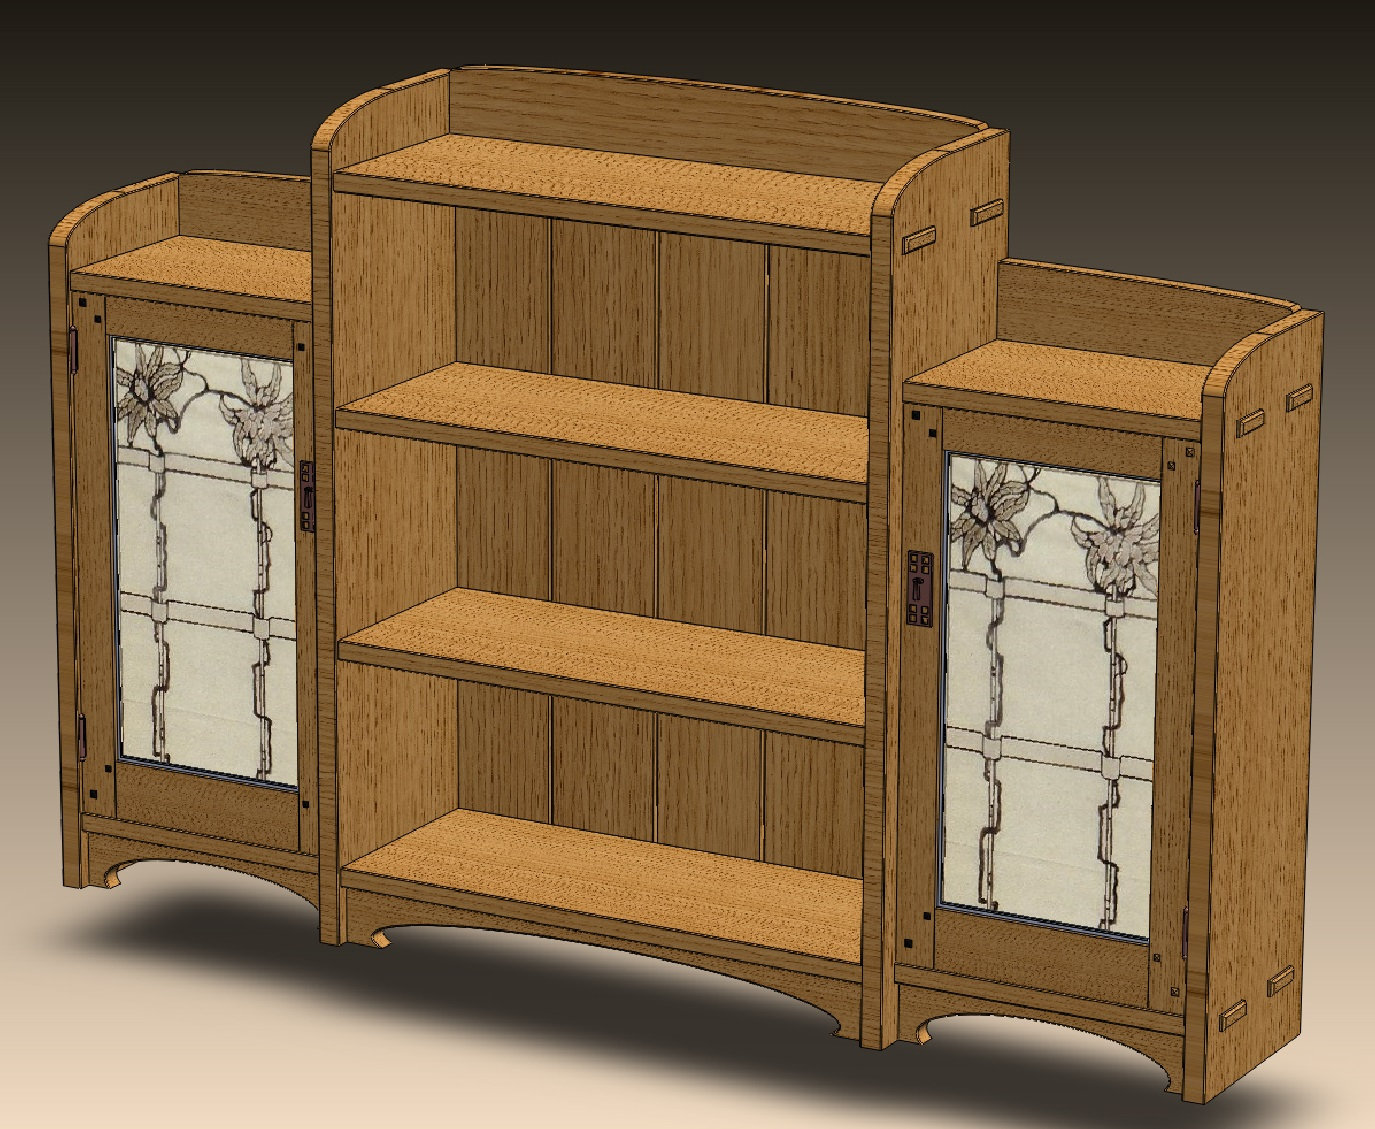 Arts crafts bookcase mcglynn on making for Arts and crafts bookshelf